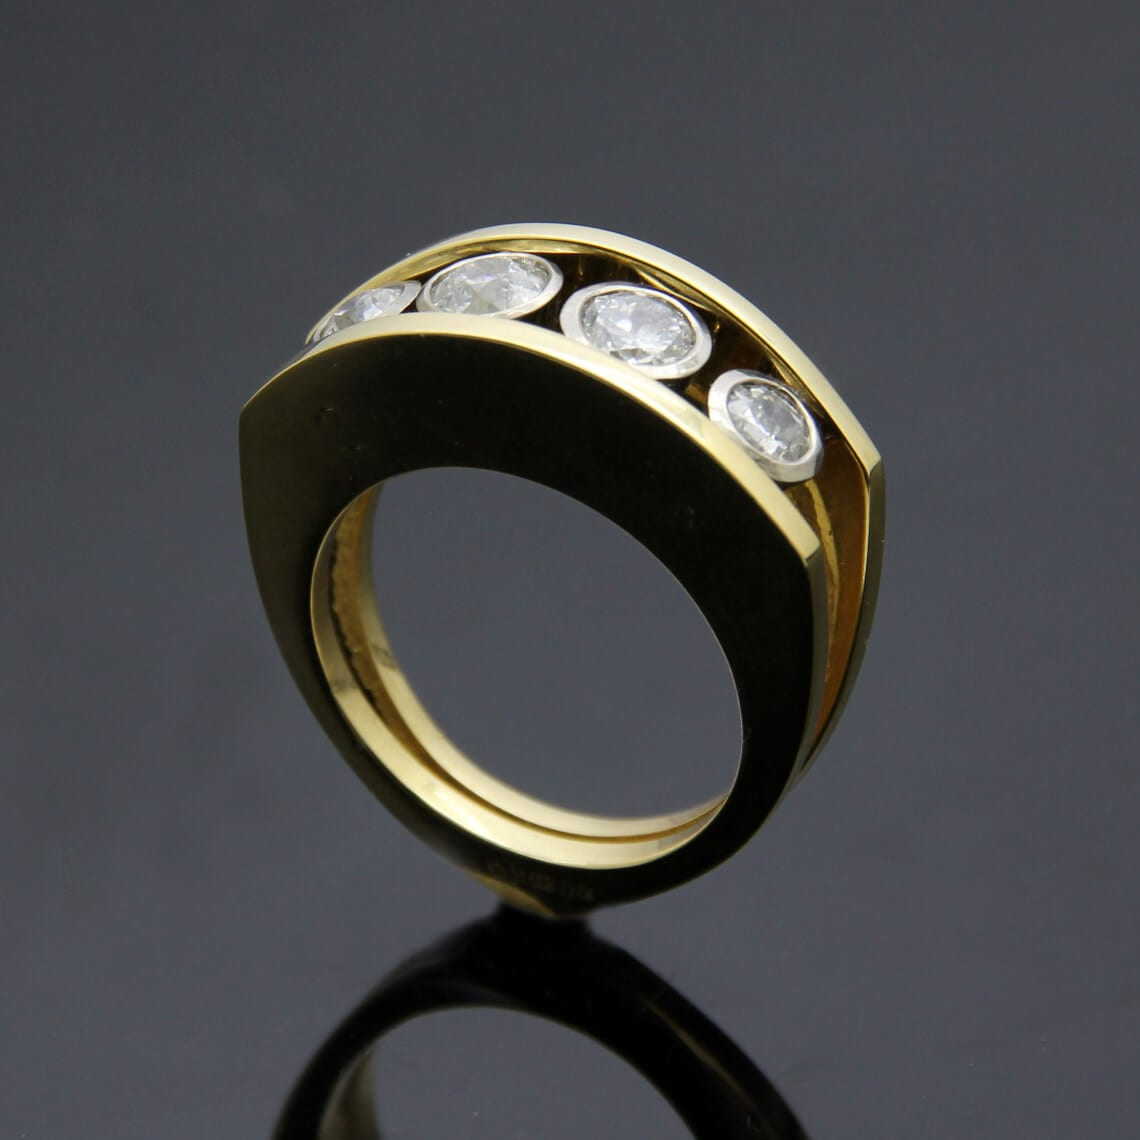 Bespoke custom made Diamond and Gold cocktail ring